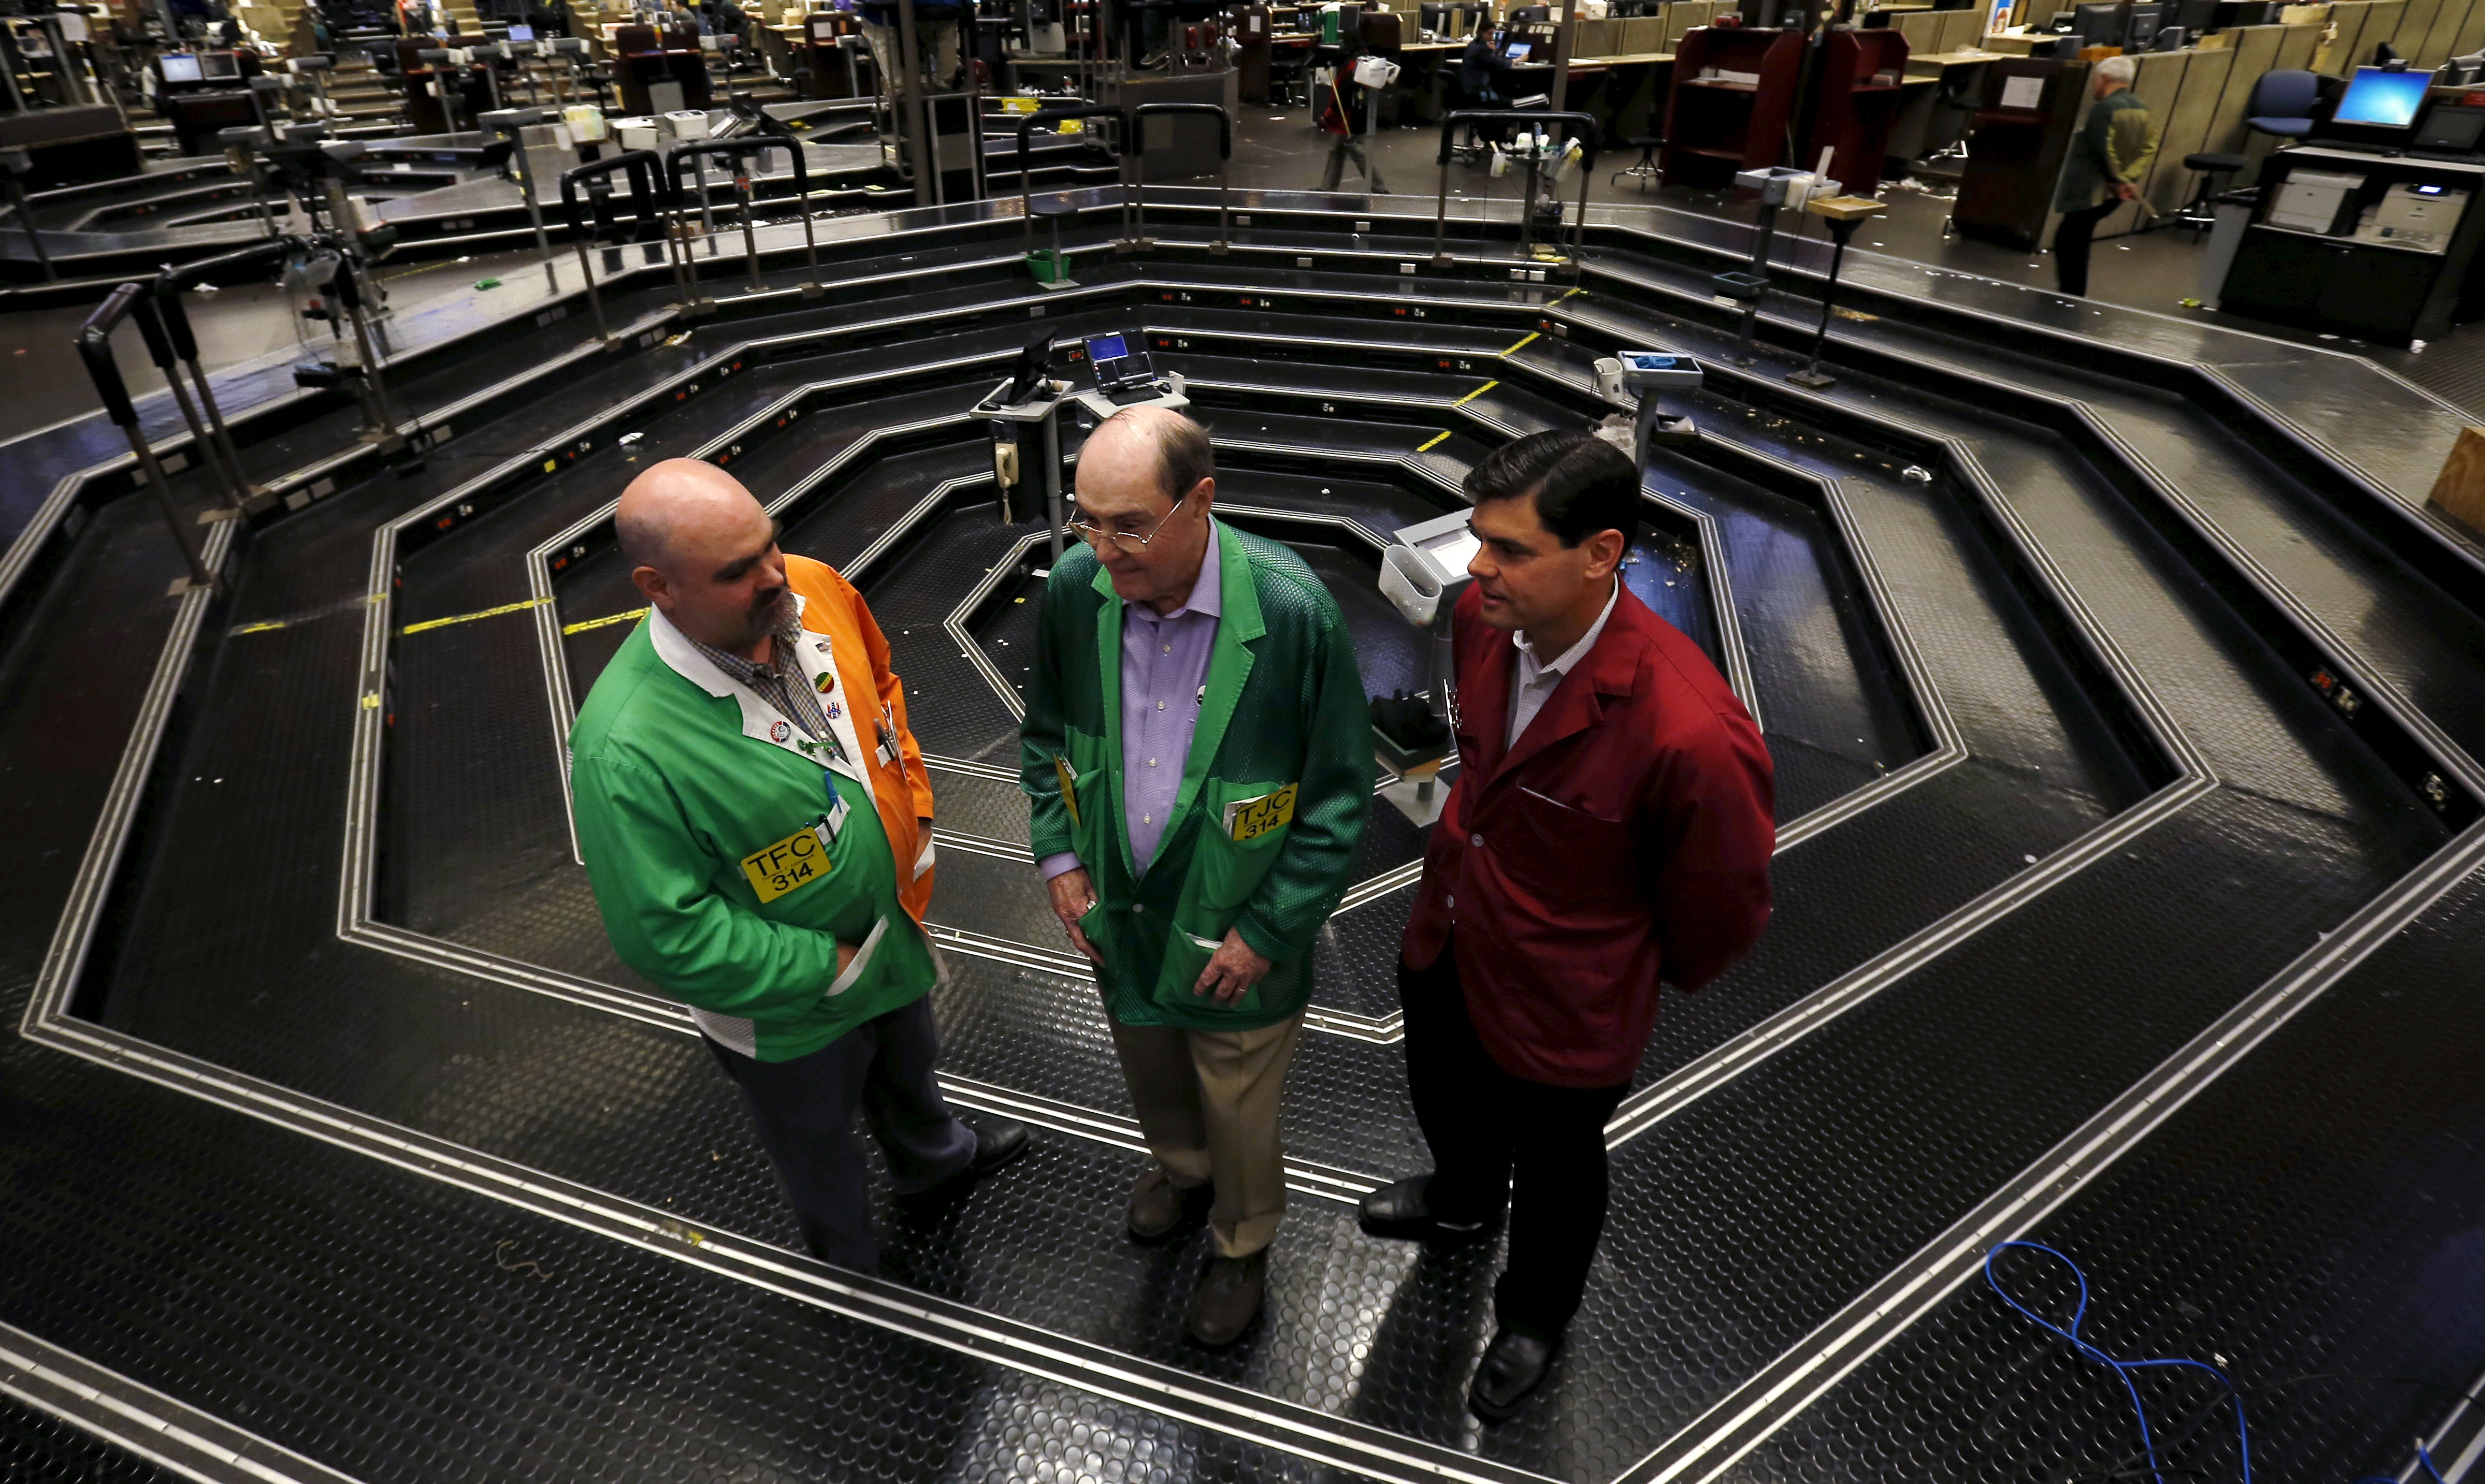 Thomas J. Cashman is joined by his two sons Thomas F. Cashman and Brendon Eugene Cashman on the Chicago Board of Trade grain trading floor in Chicago